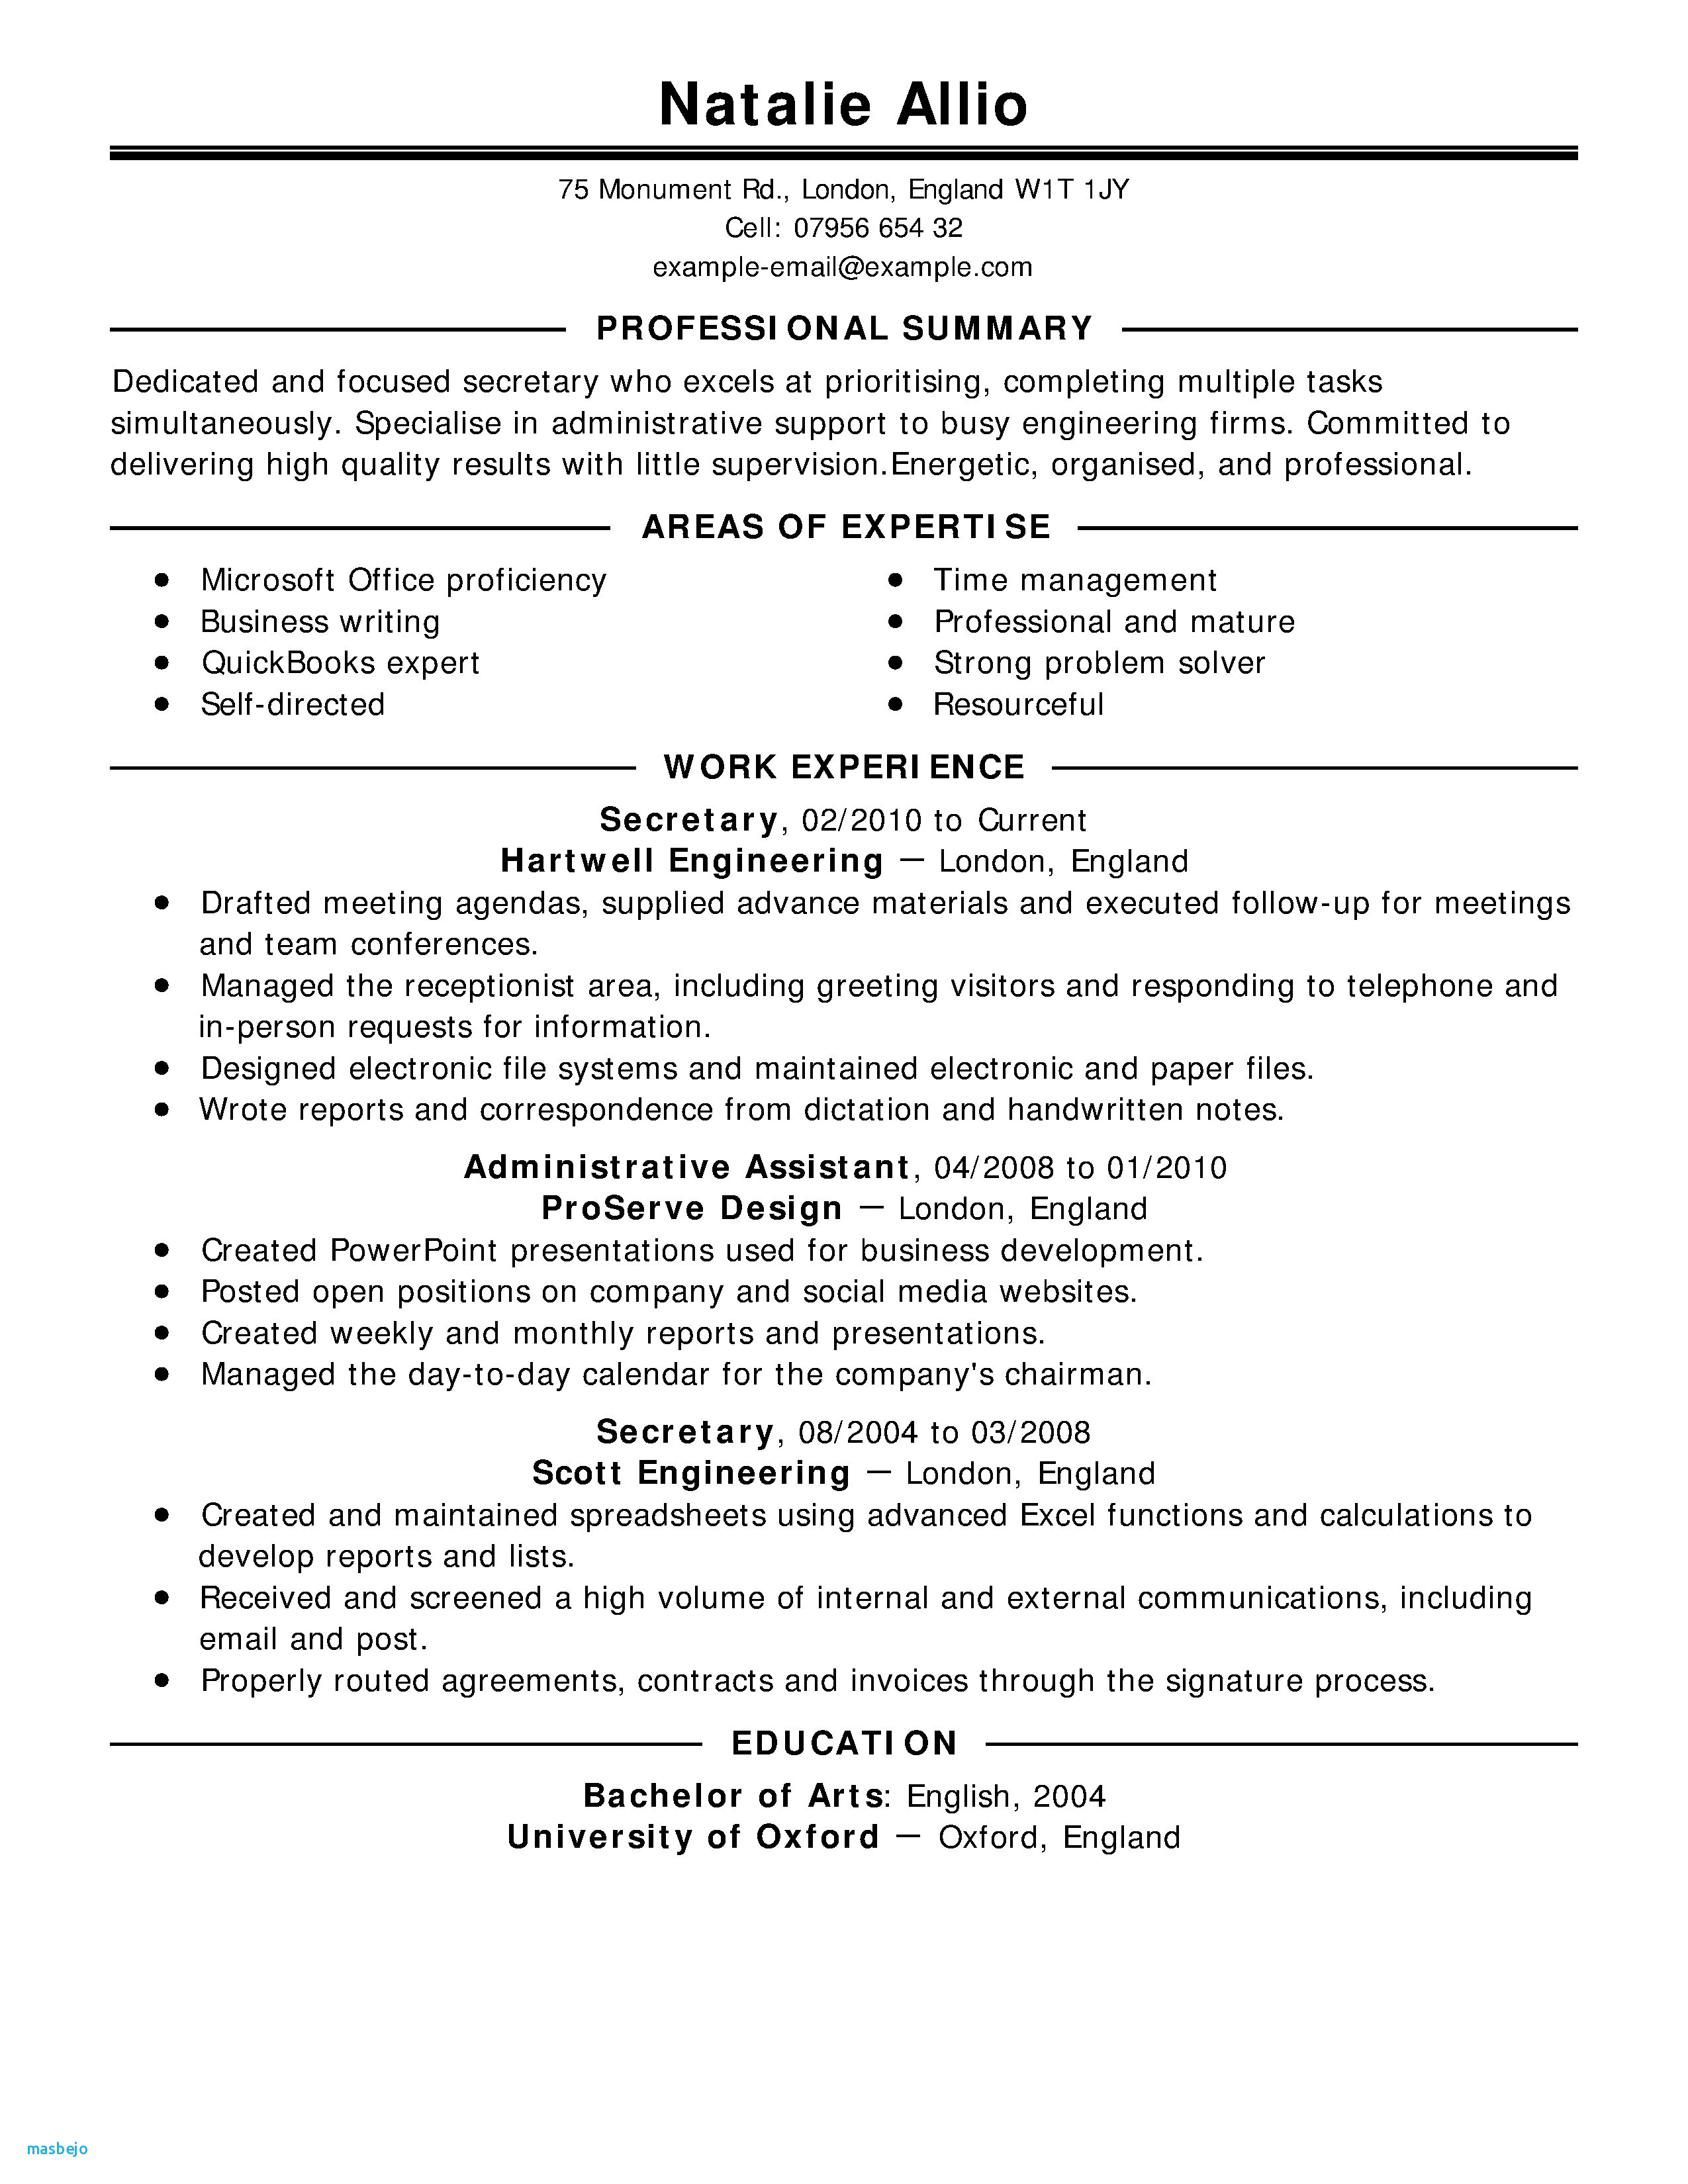 lvn resume template example-Lpn Resume Examples Unique Sample College Application Resume Lovely Painter Resume 0d 15-b